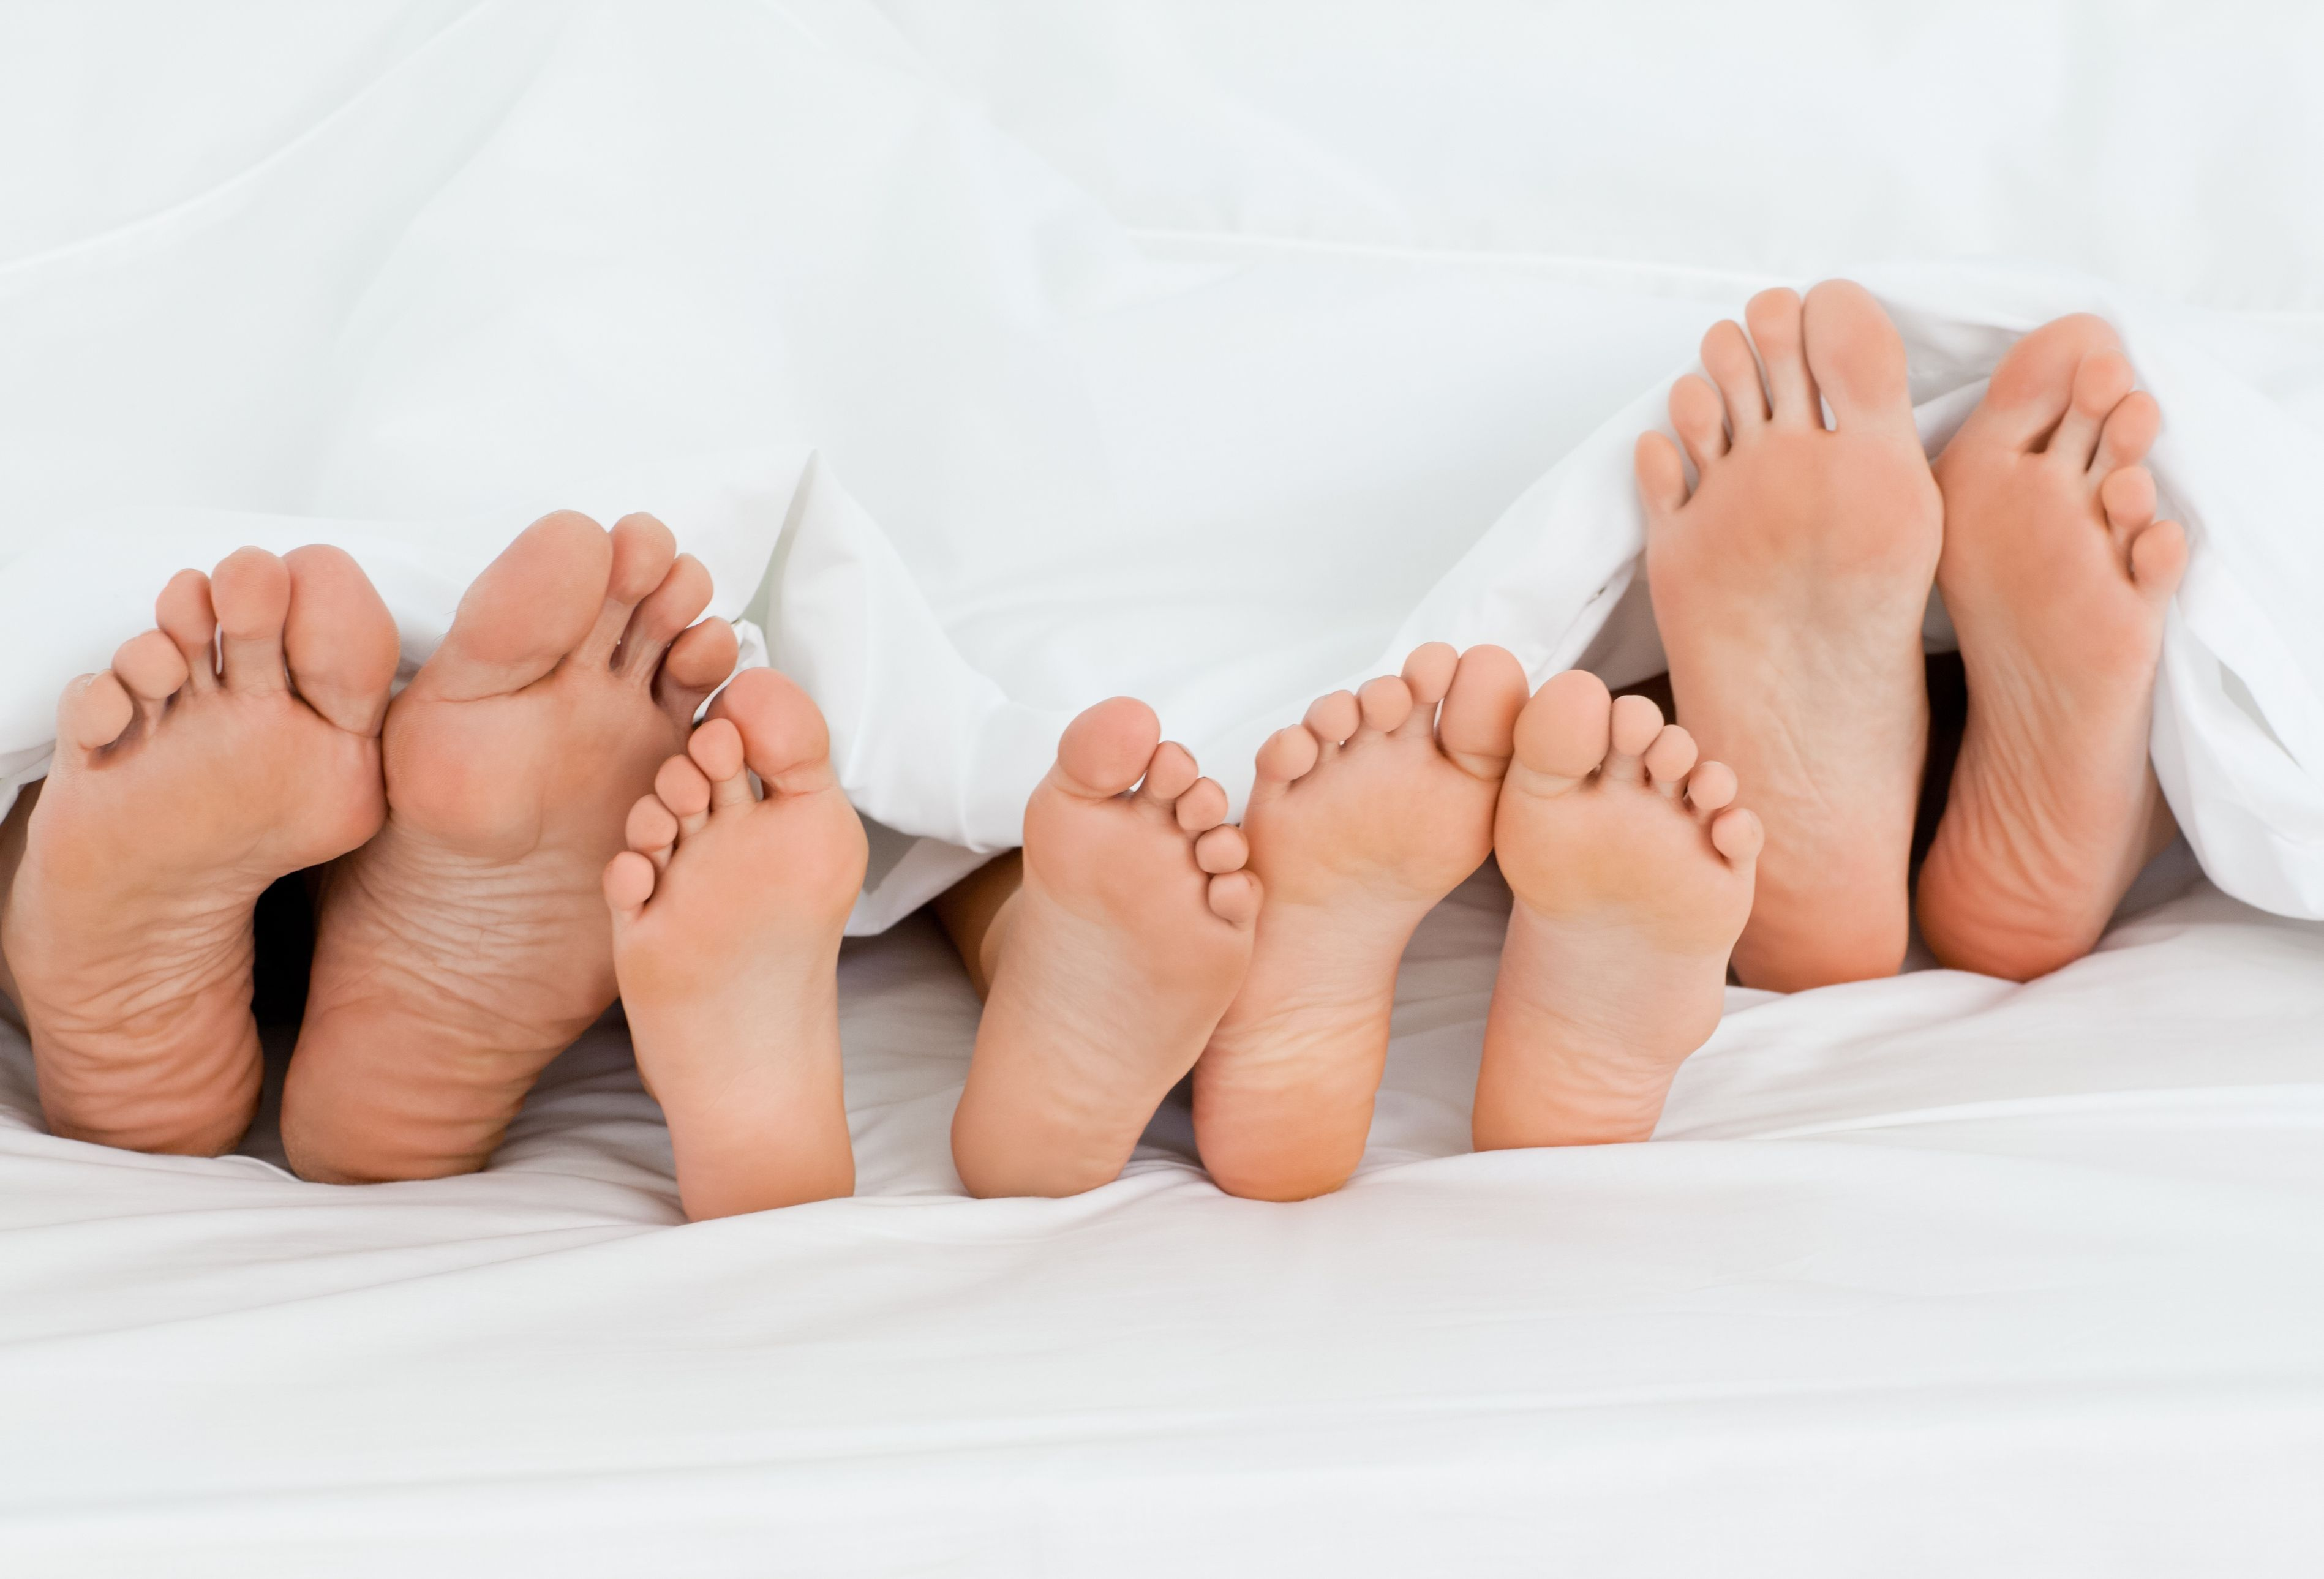 St Albans Podiatry Clinic